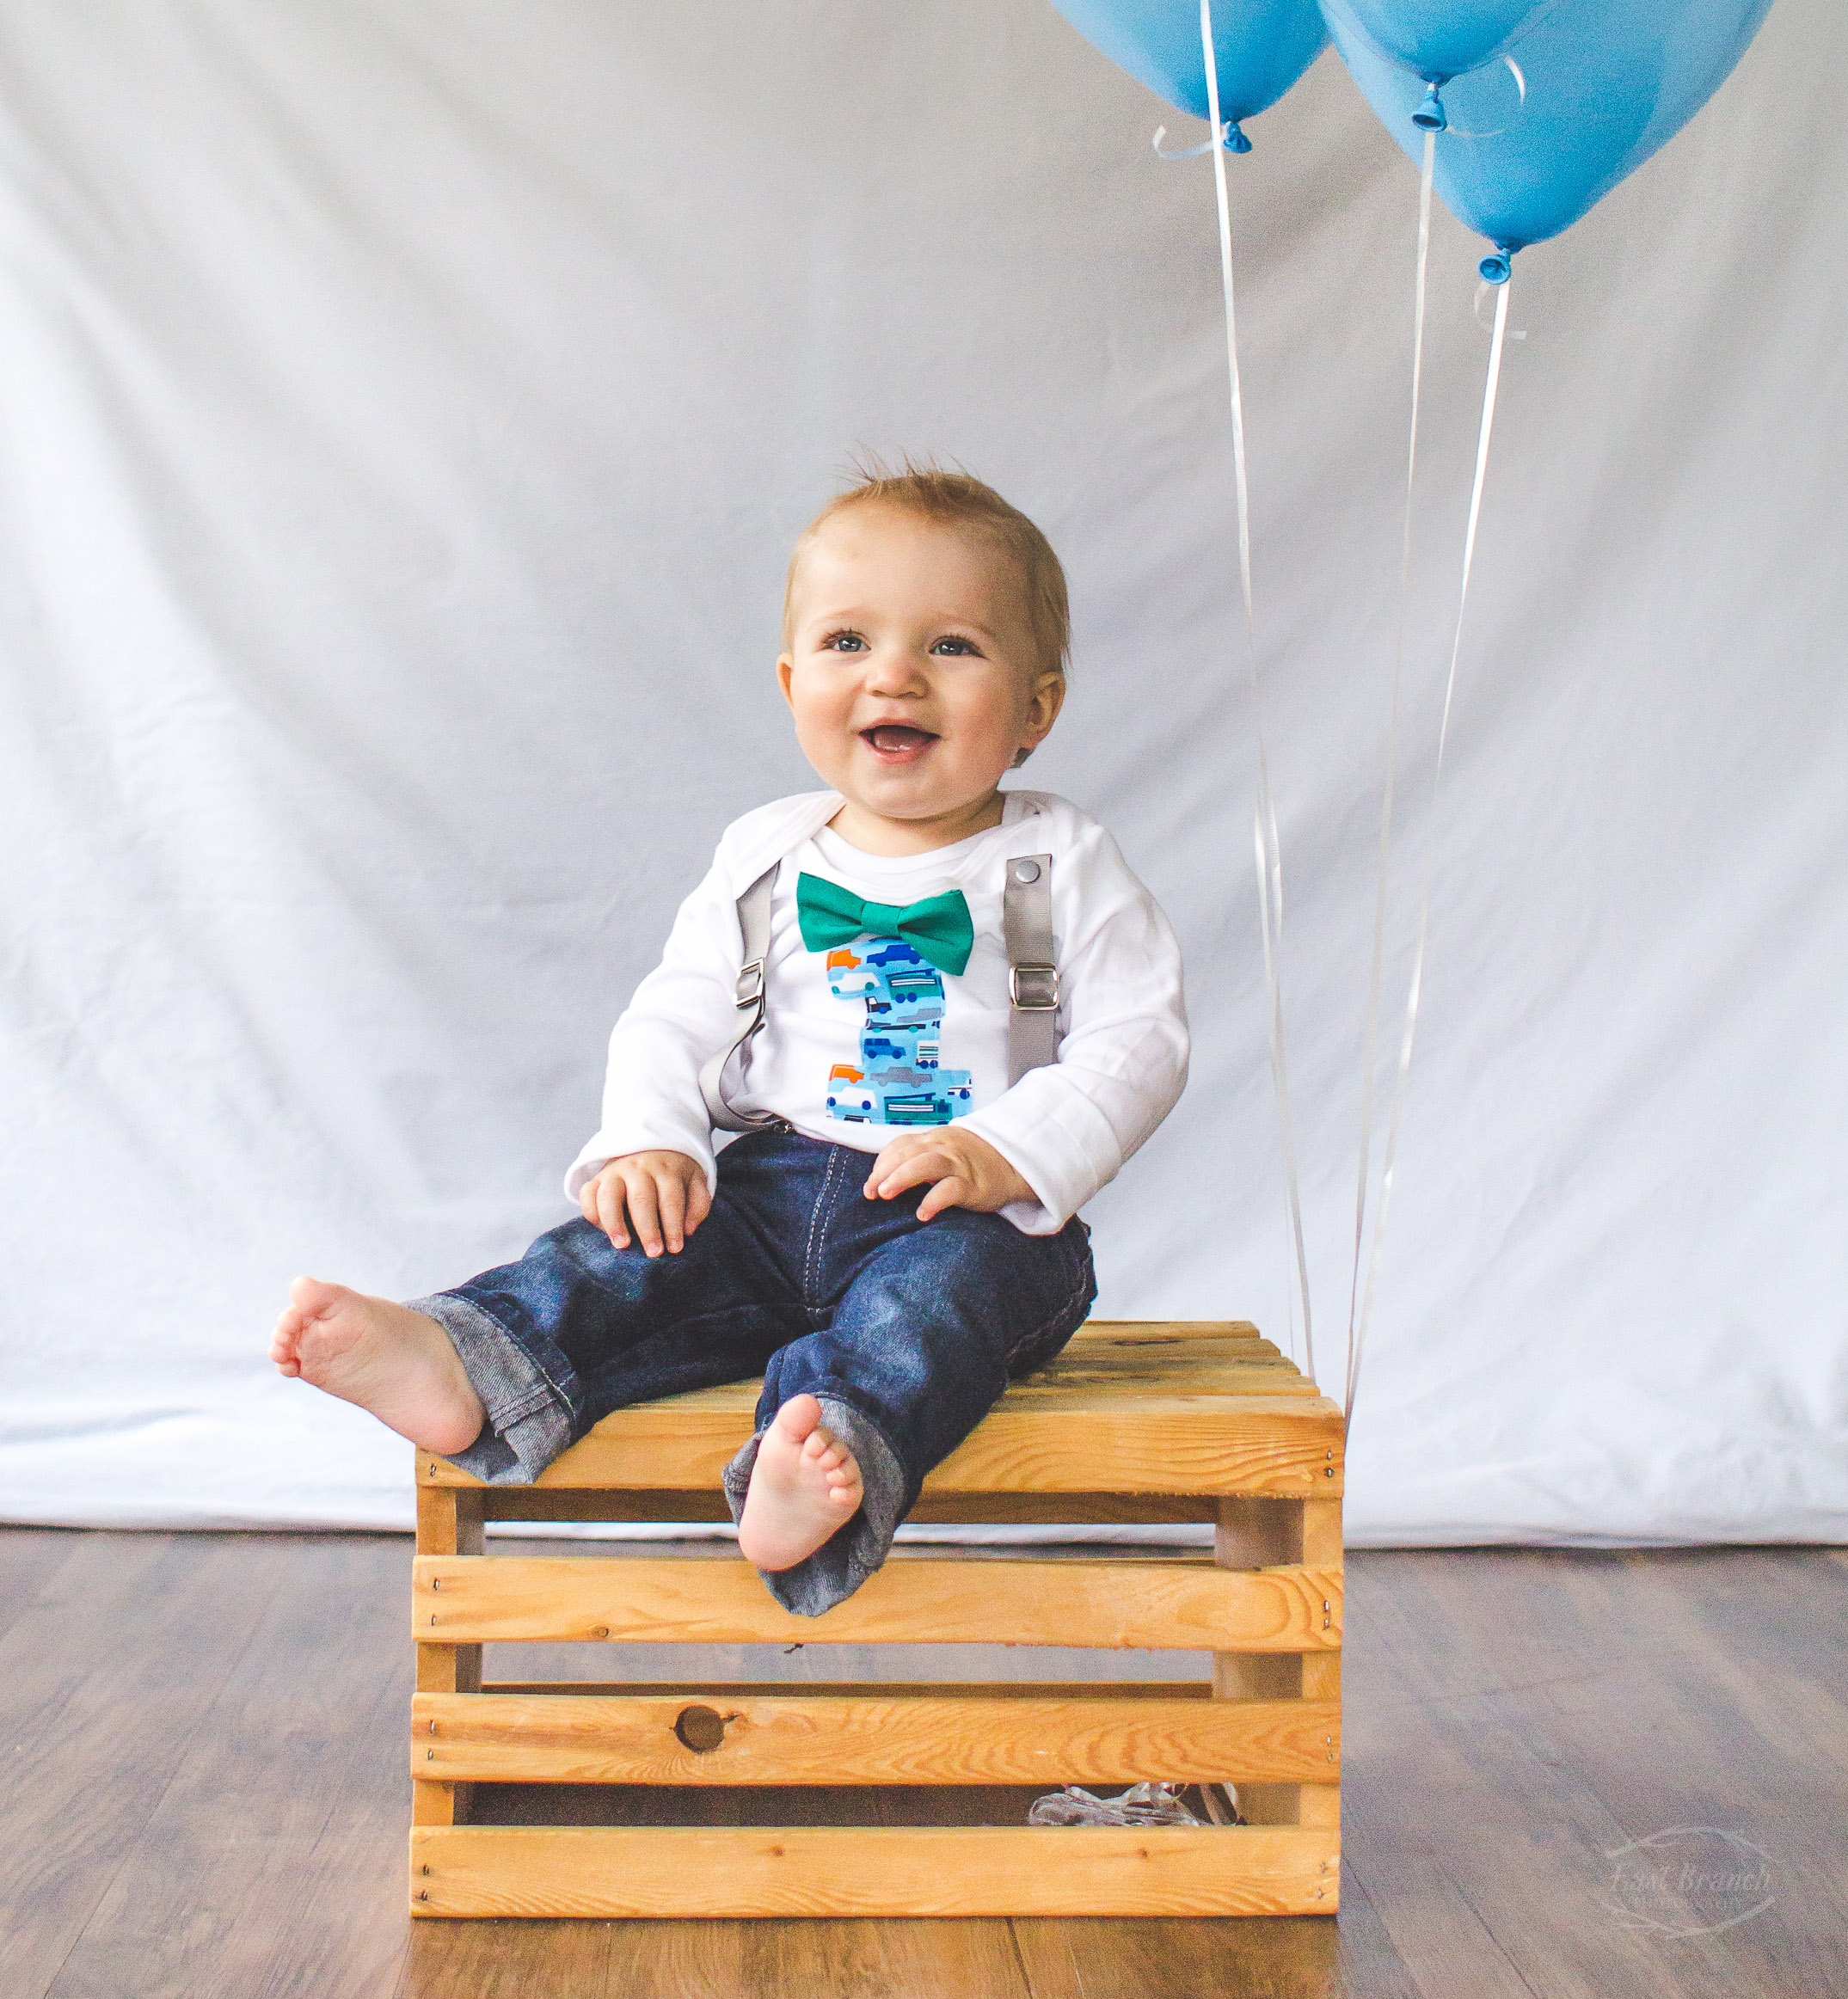 I'm a sucker for bowties and suspenders and smiling baby boys.